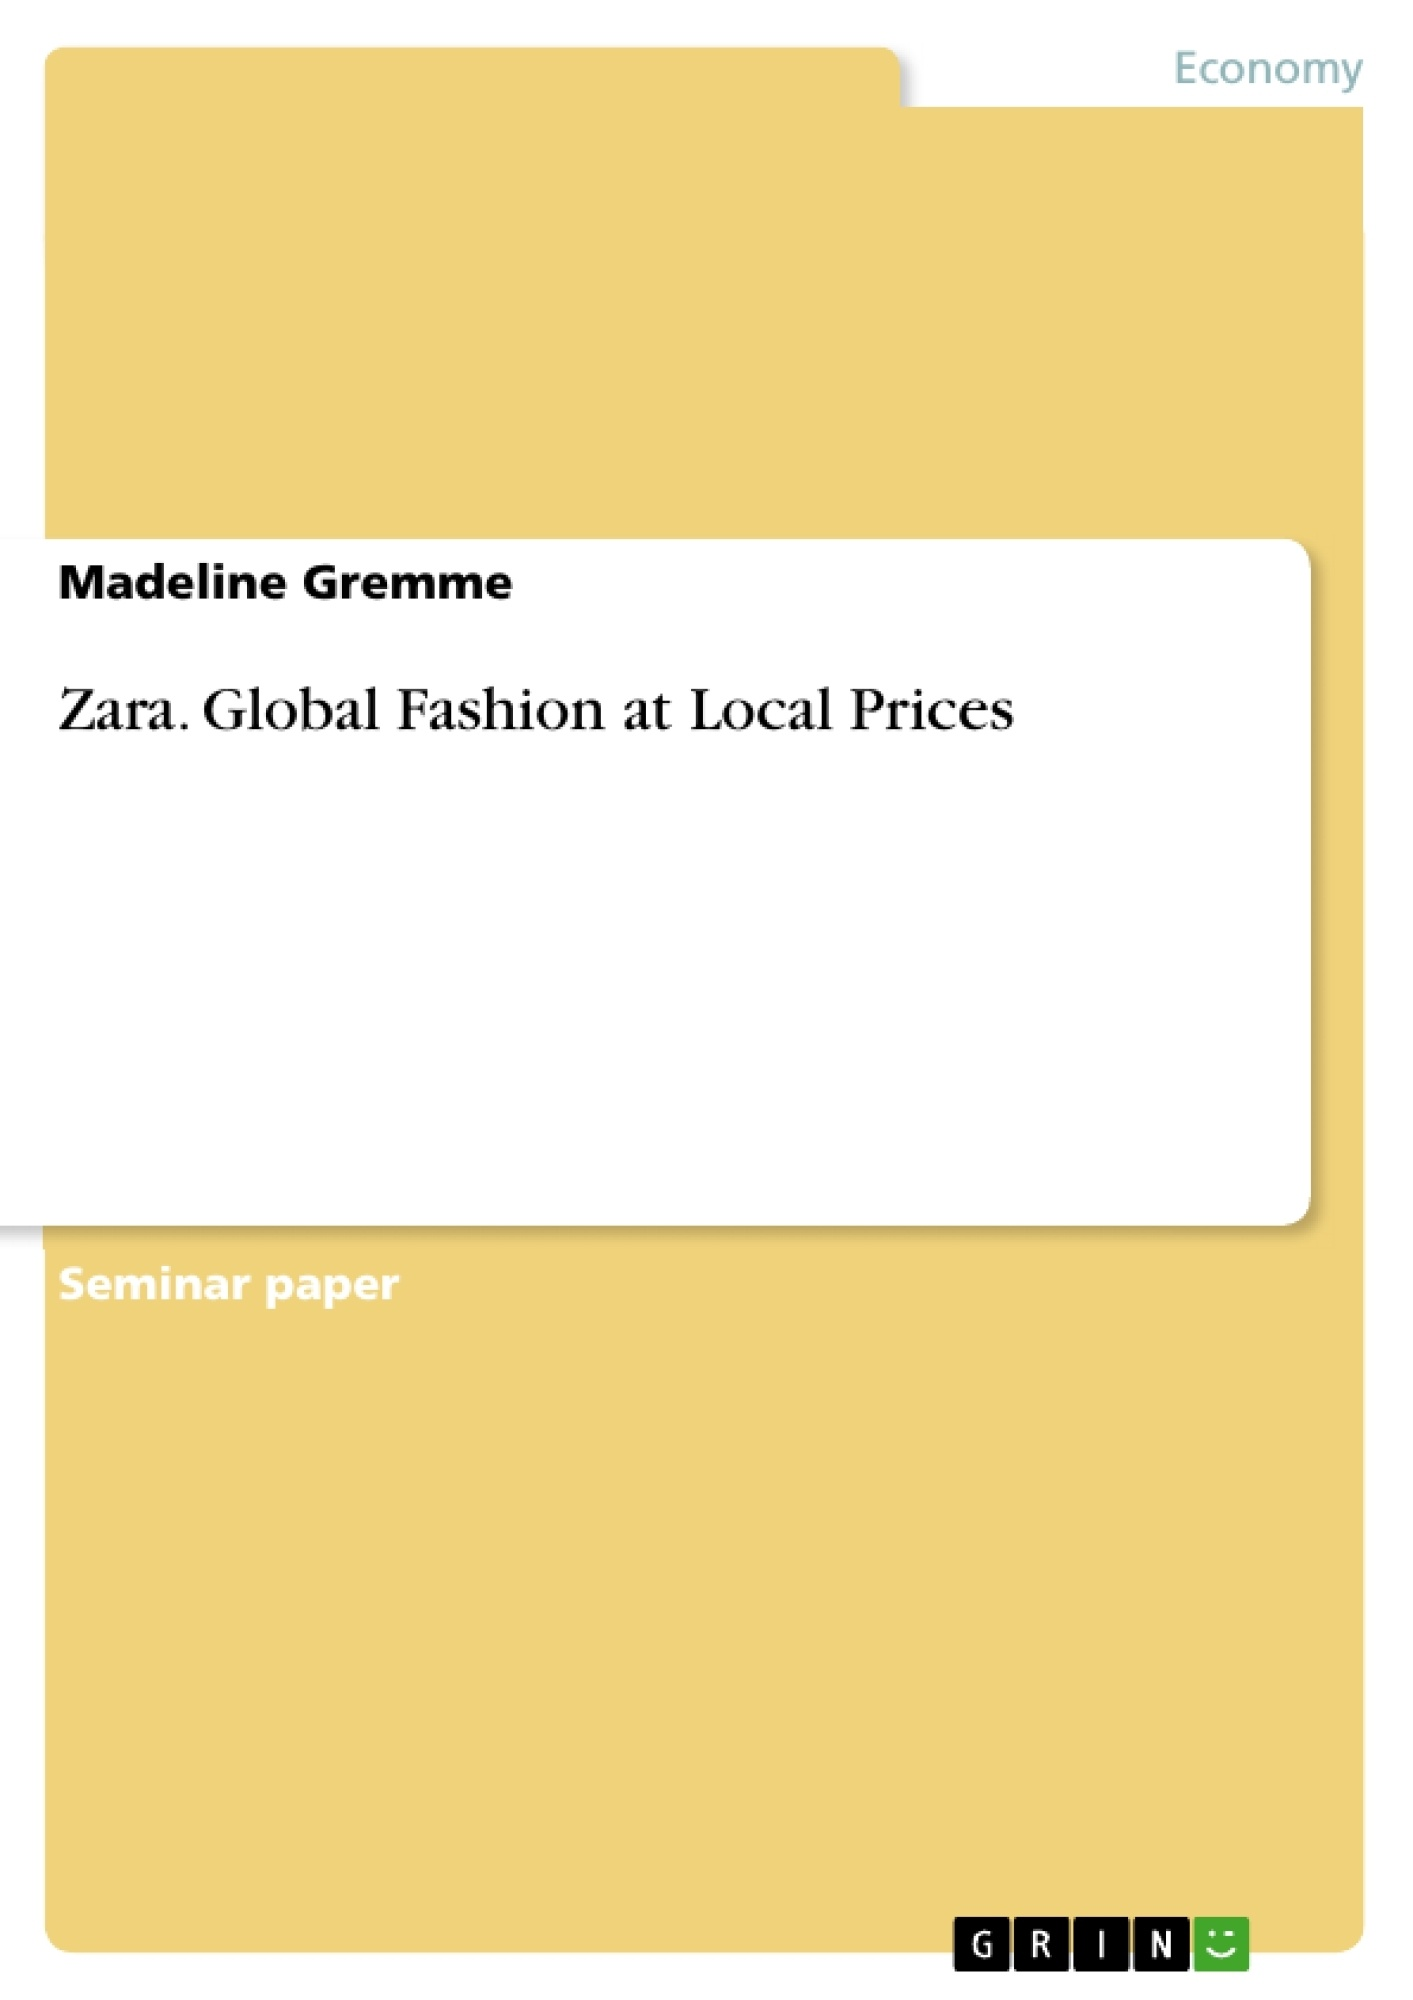 Title: Zara. Global Fashion at Local Prices